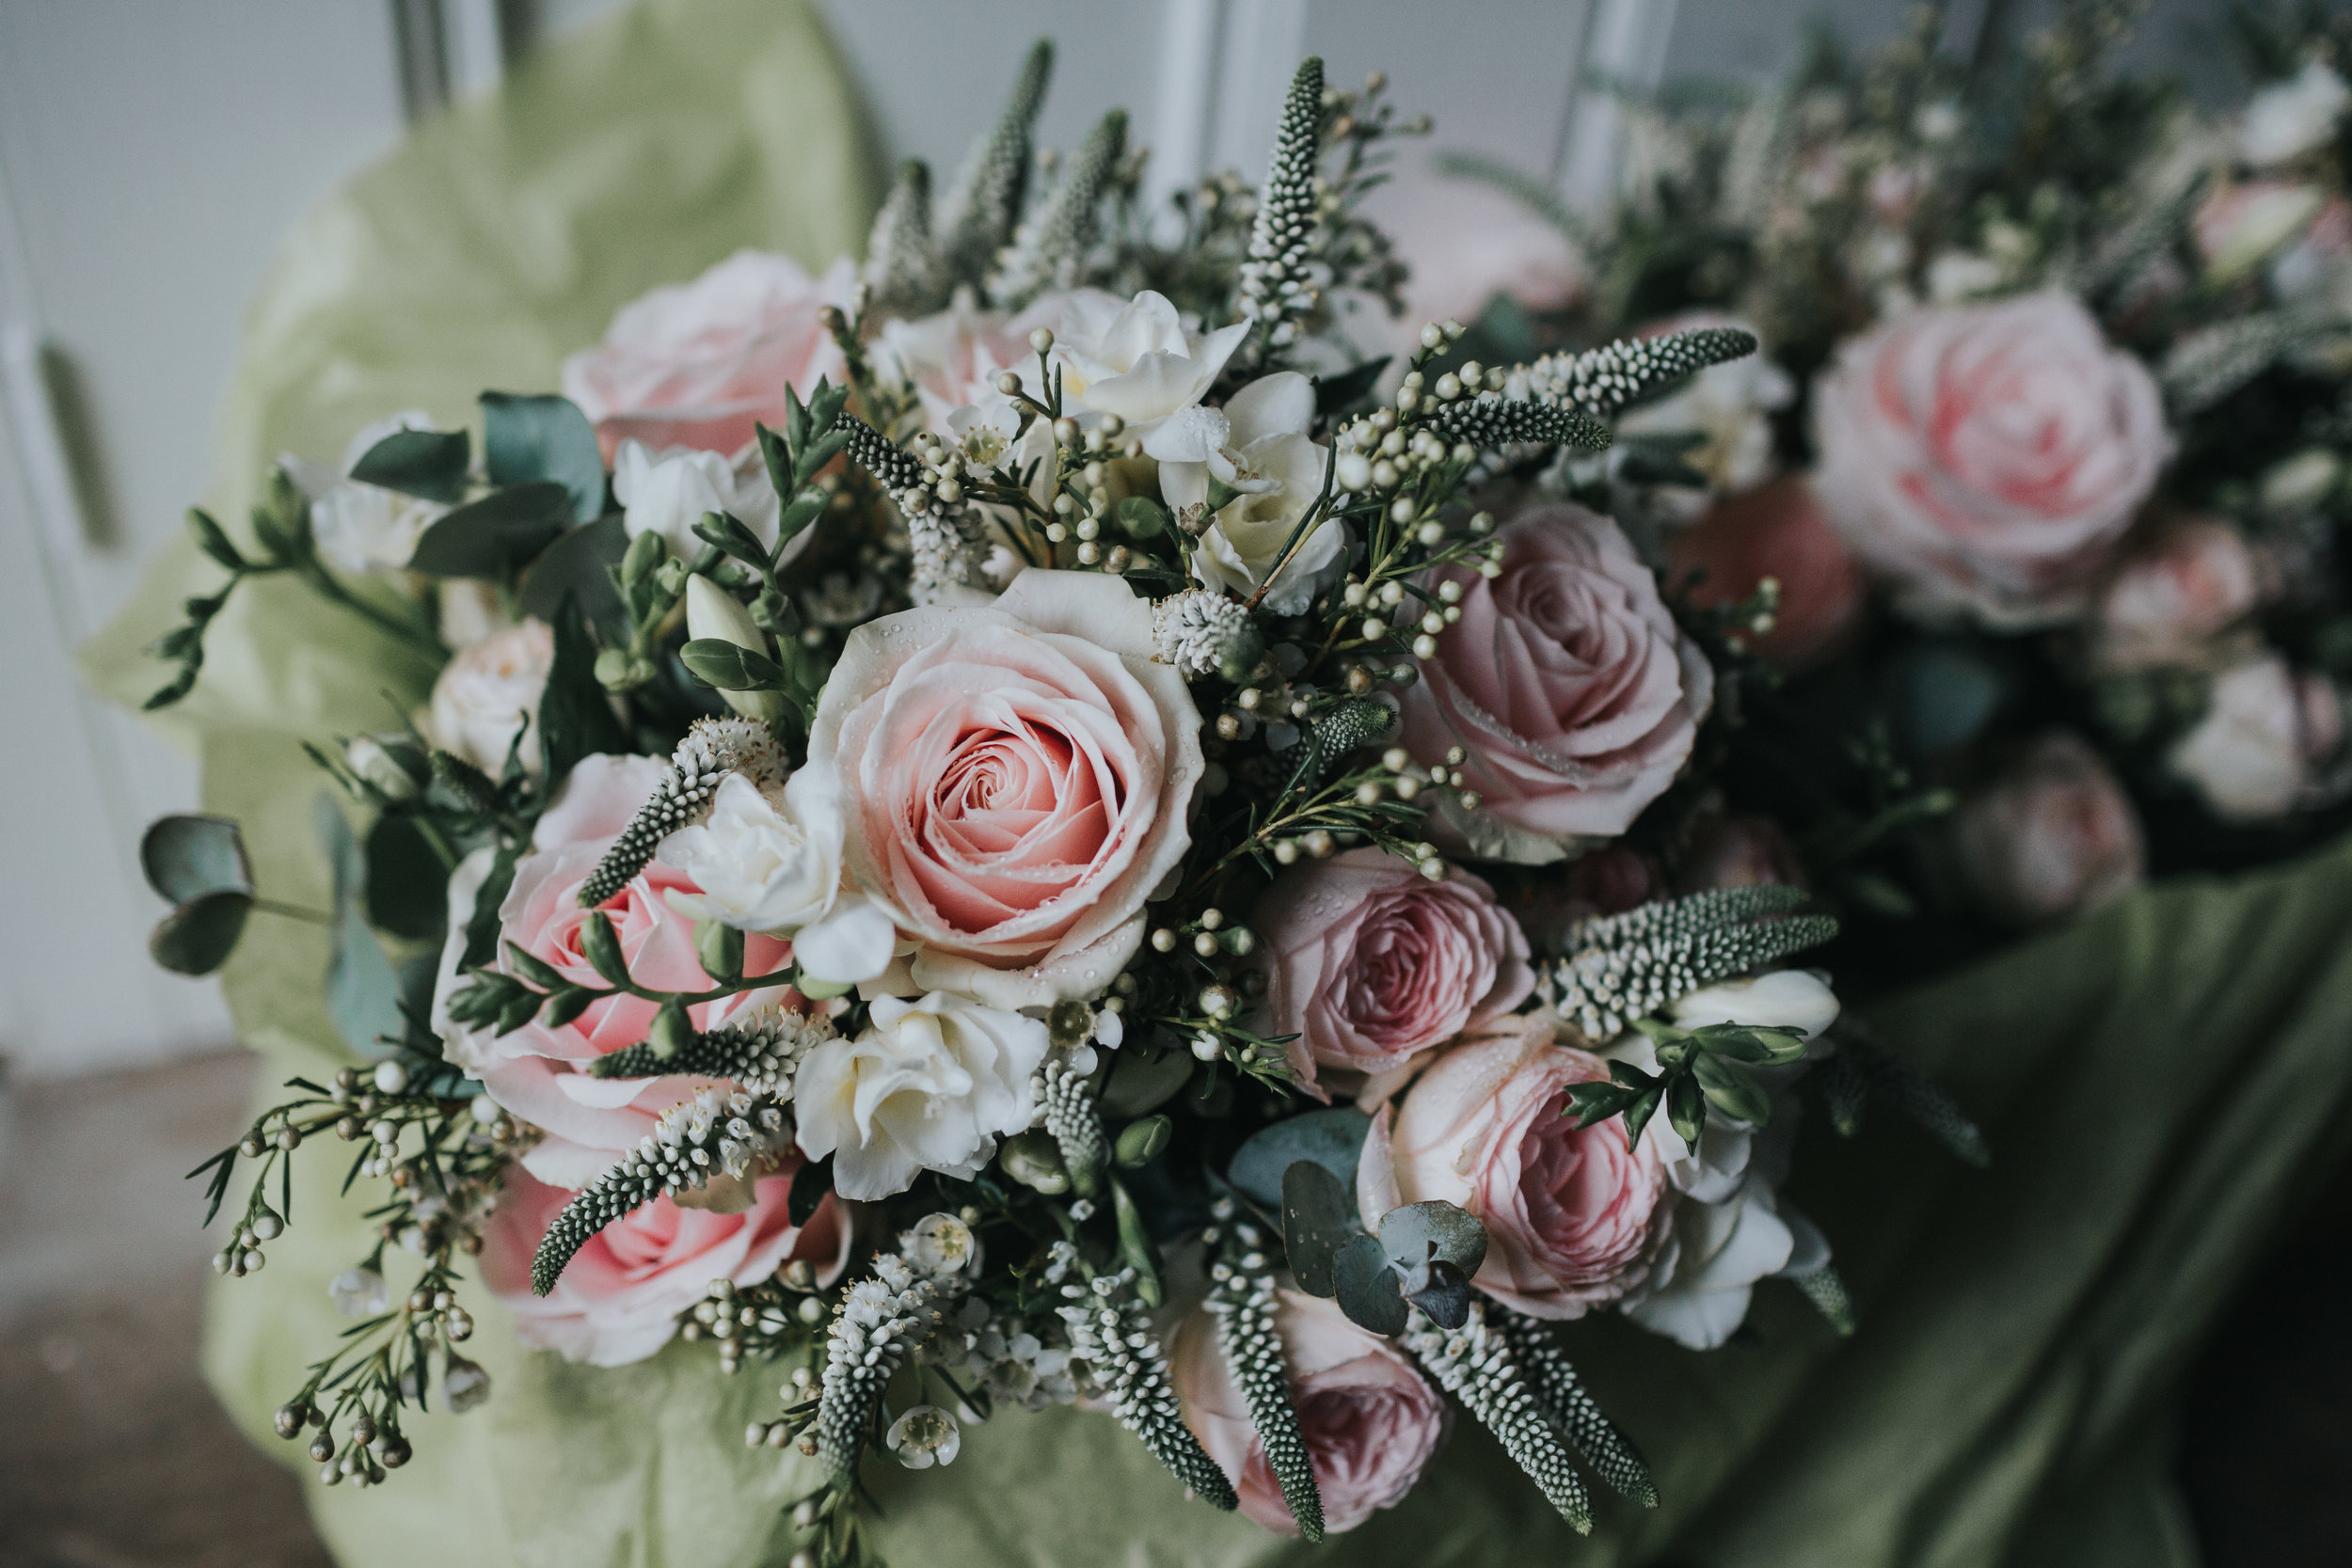 Brides bouquet, pink flowers and pale green leaves.